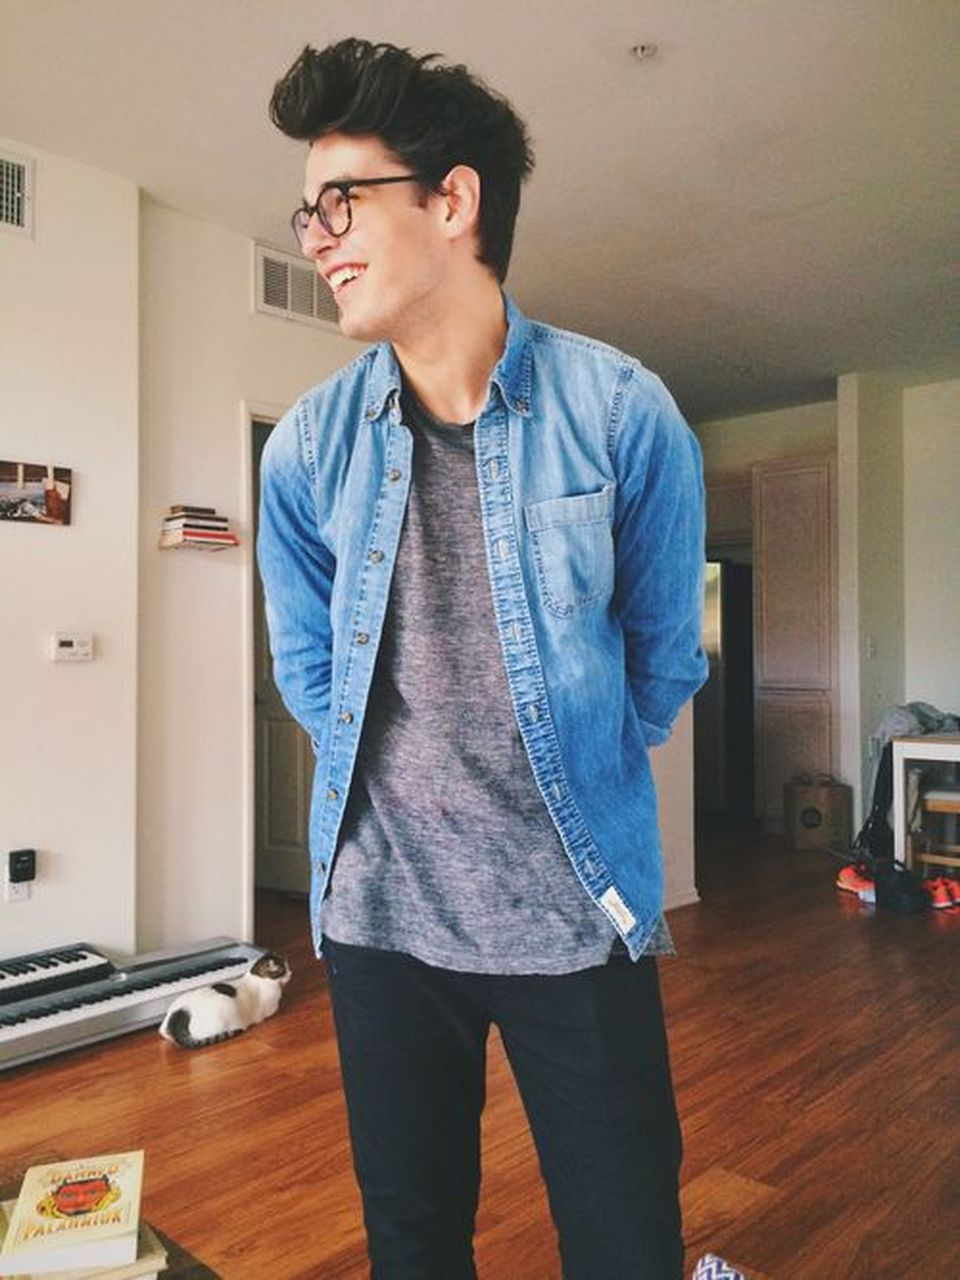 Casual Indie Mens Fashion Outfits Style 8: Casual Indie Mens Fashion Outfits Style 31